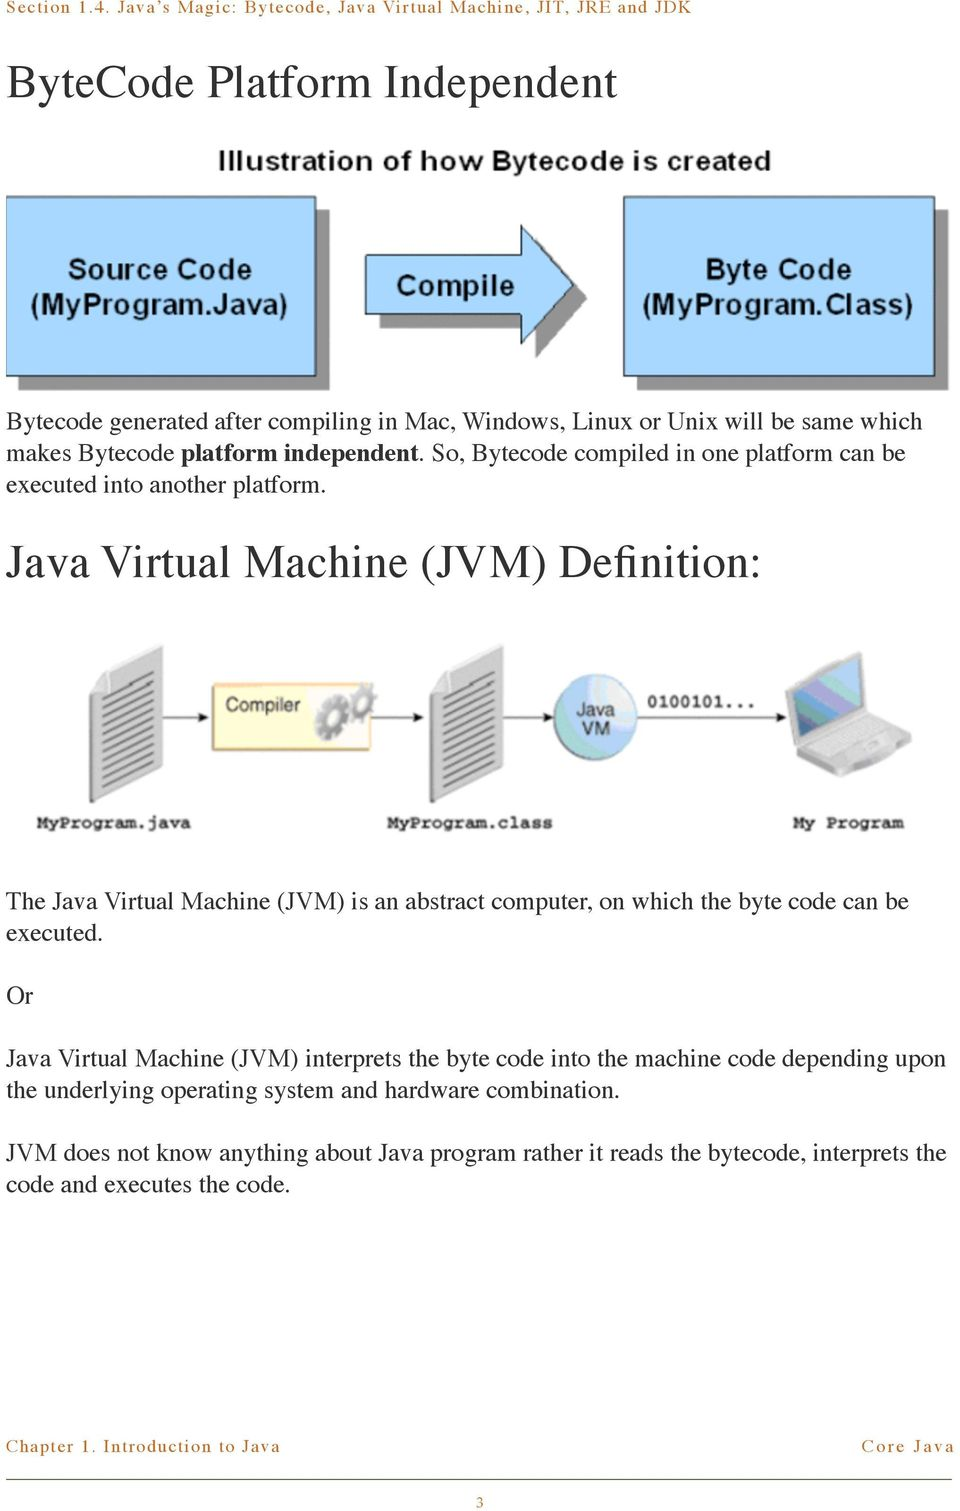 Java Virtual Machine (JVM) Definition: The Java Virtual Machine (JVM) is an abstract computer, on which the byte code can be executed.